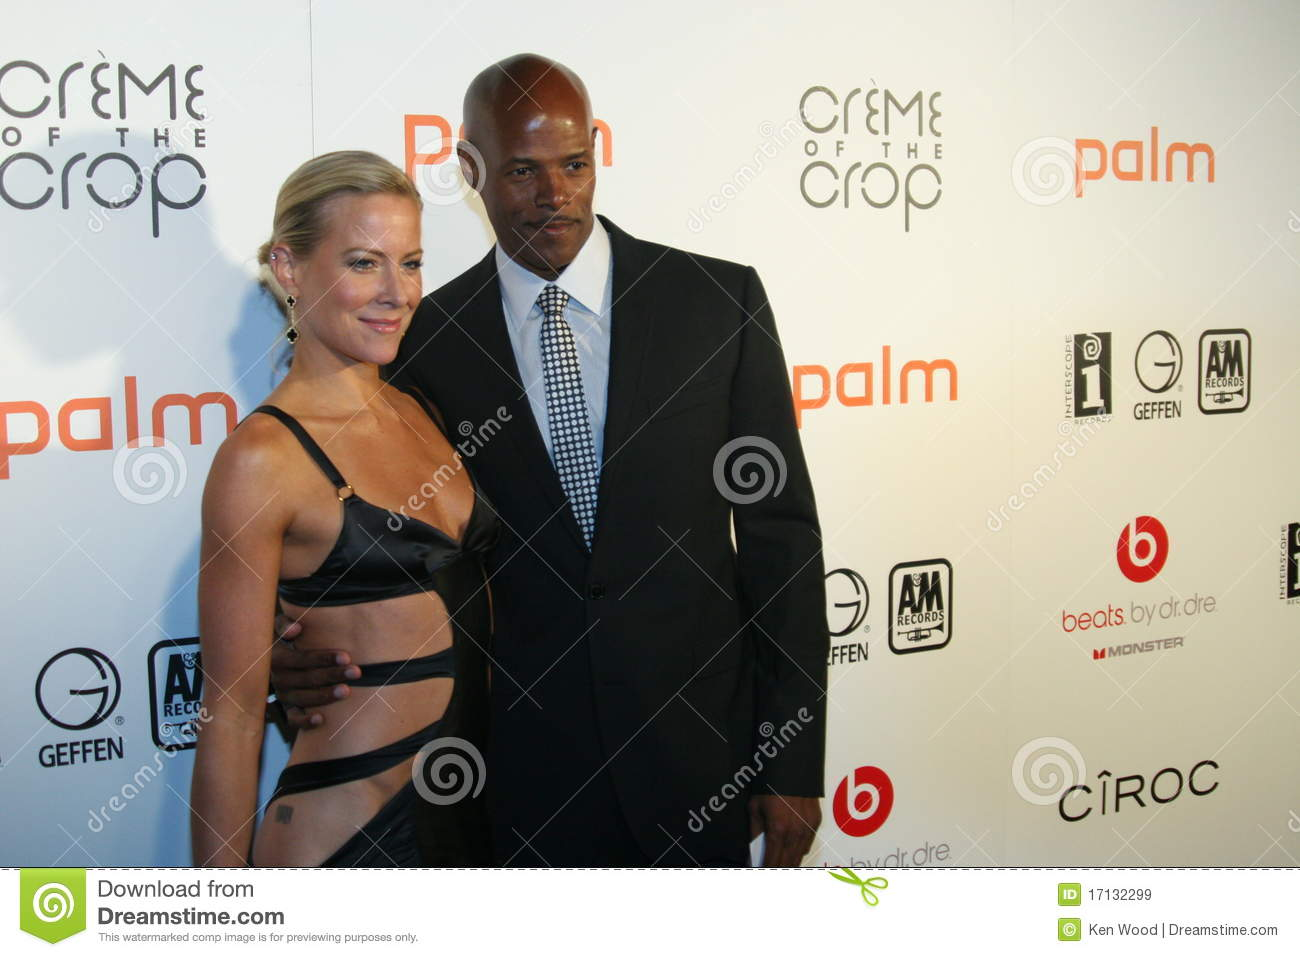 Keenan Ivory Wayans and Brittany Daniel #3